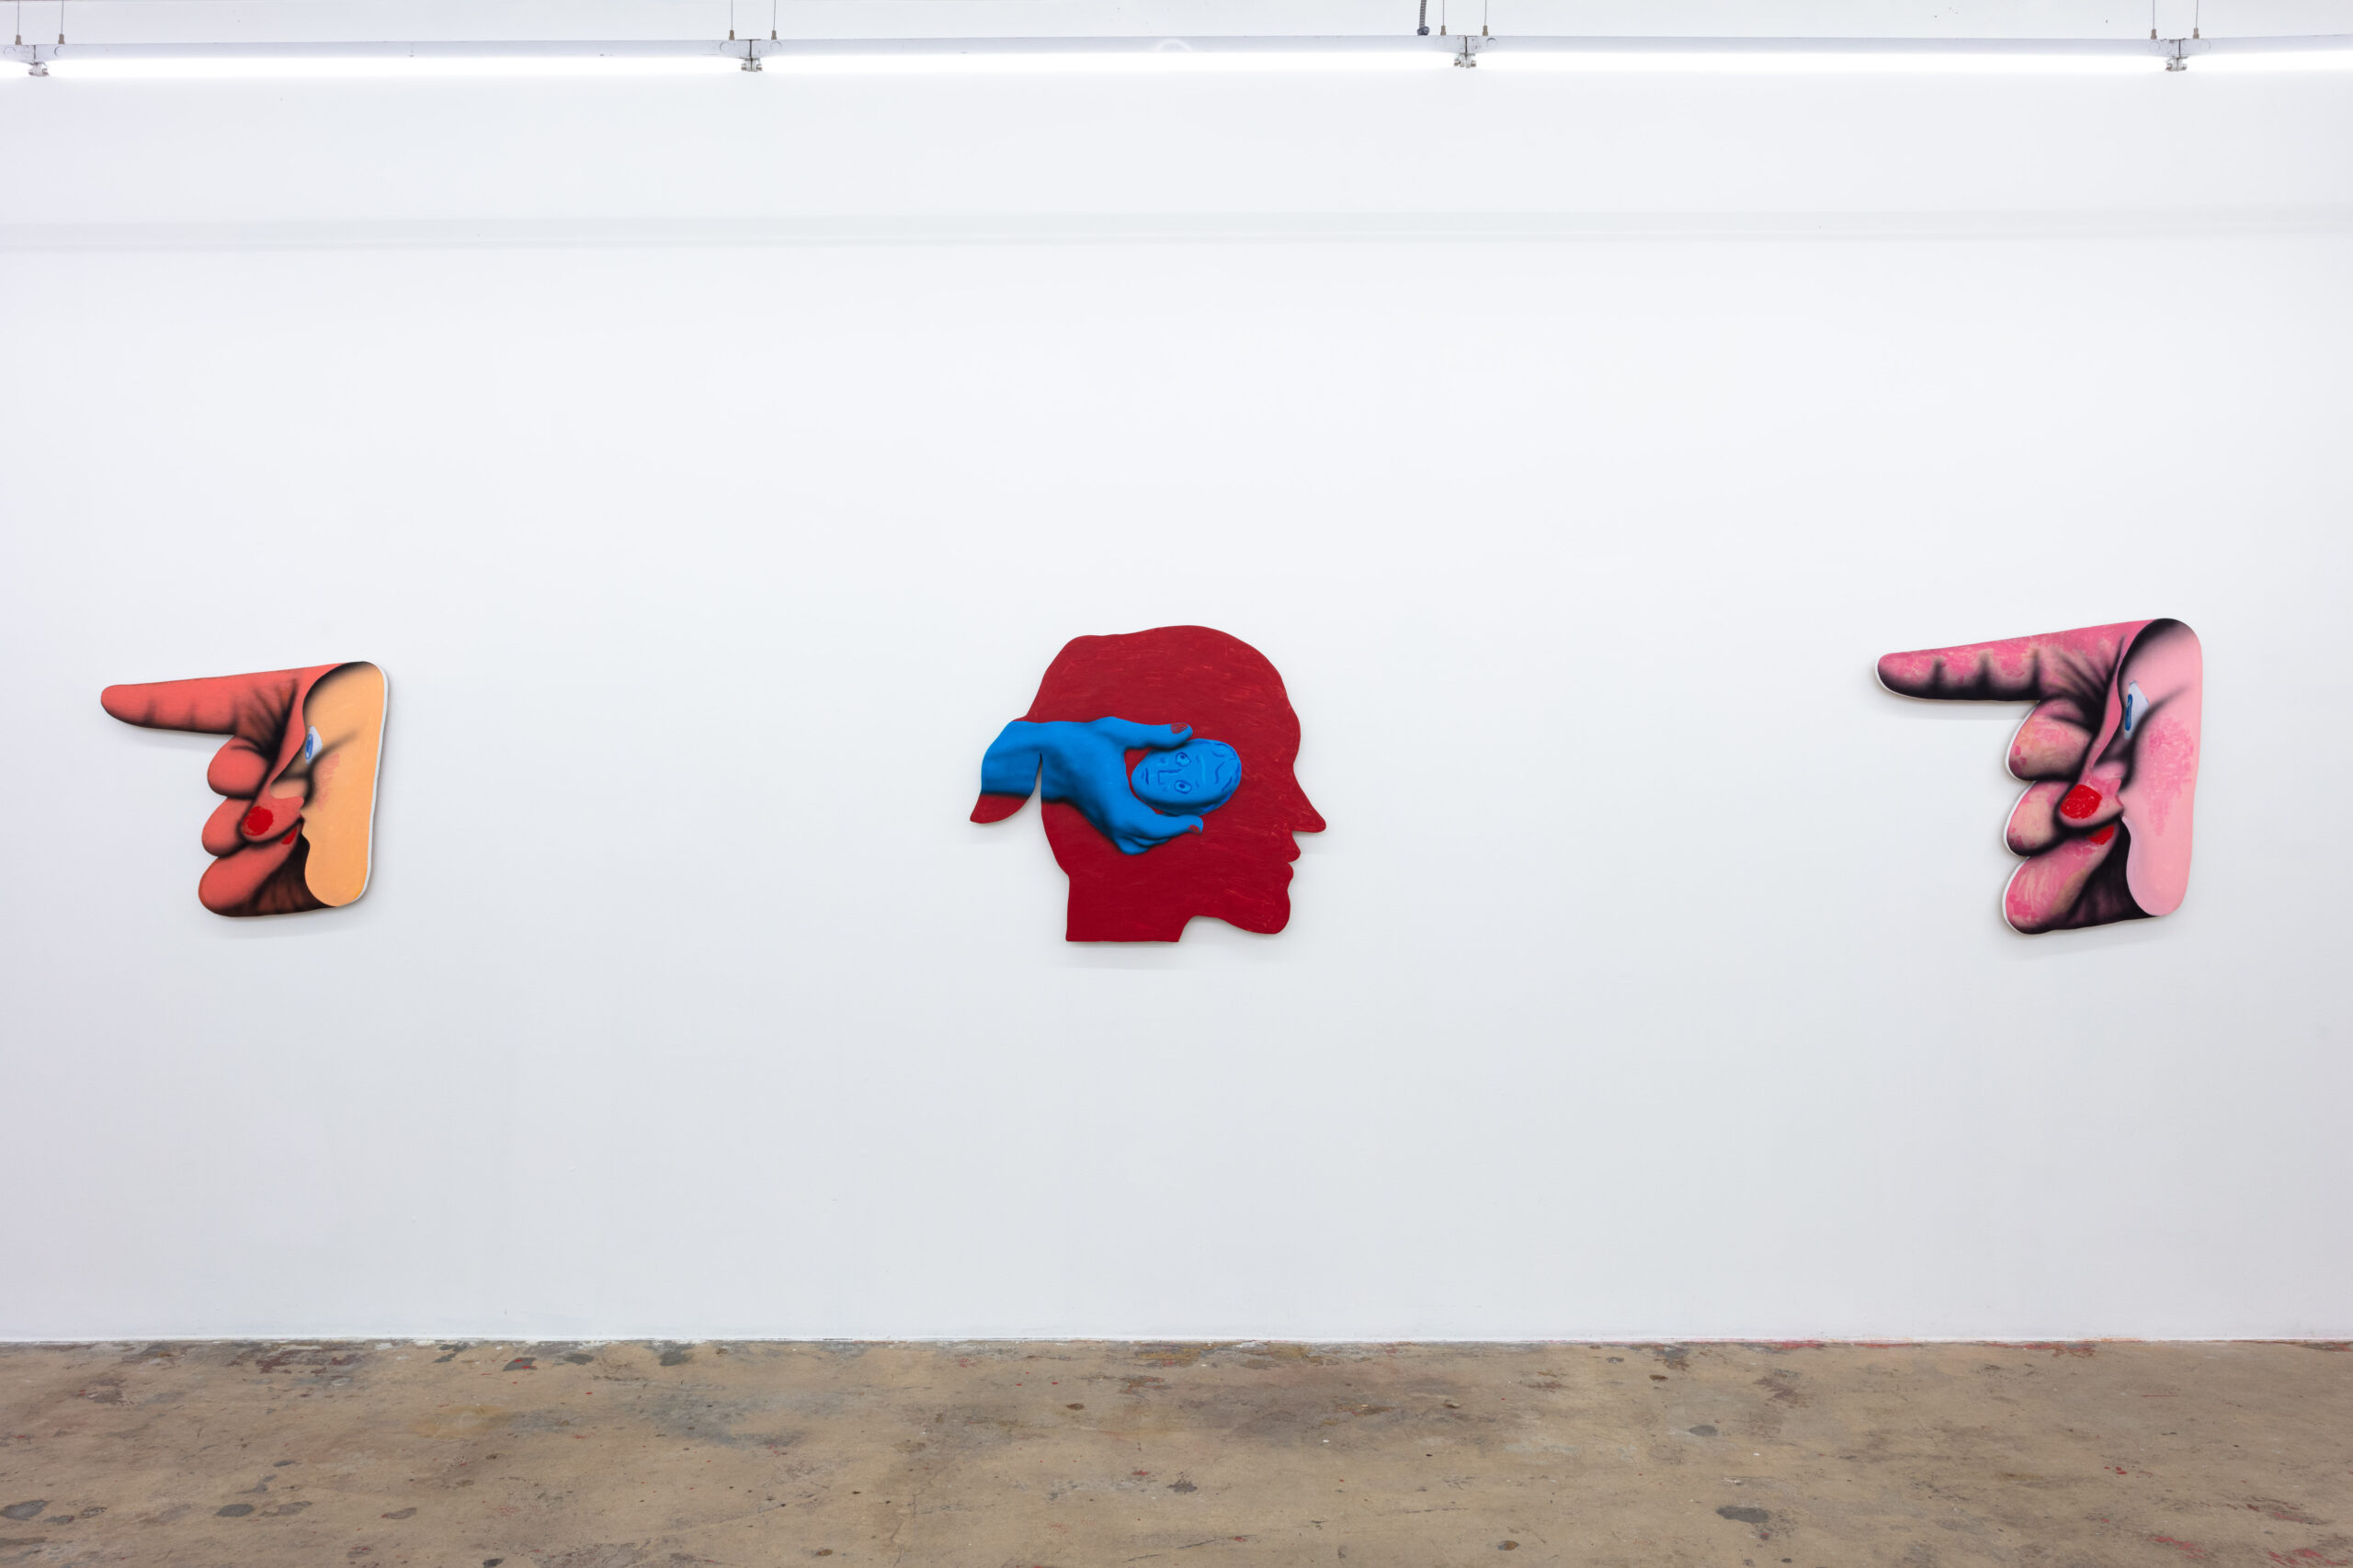 James English Leary, Patter, Installation View